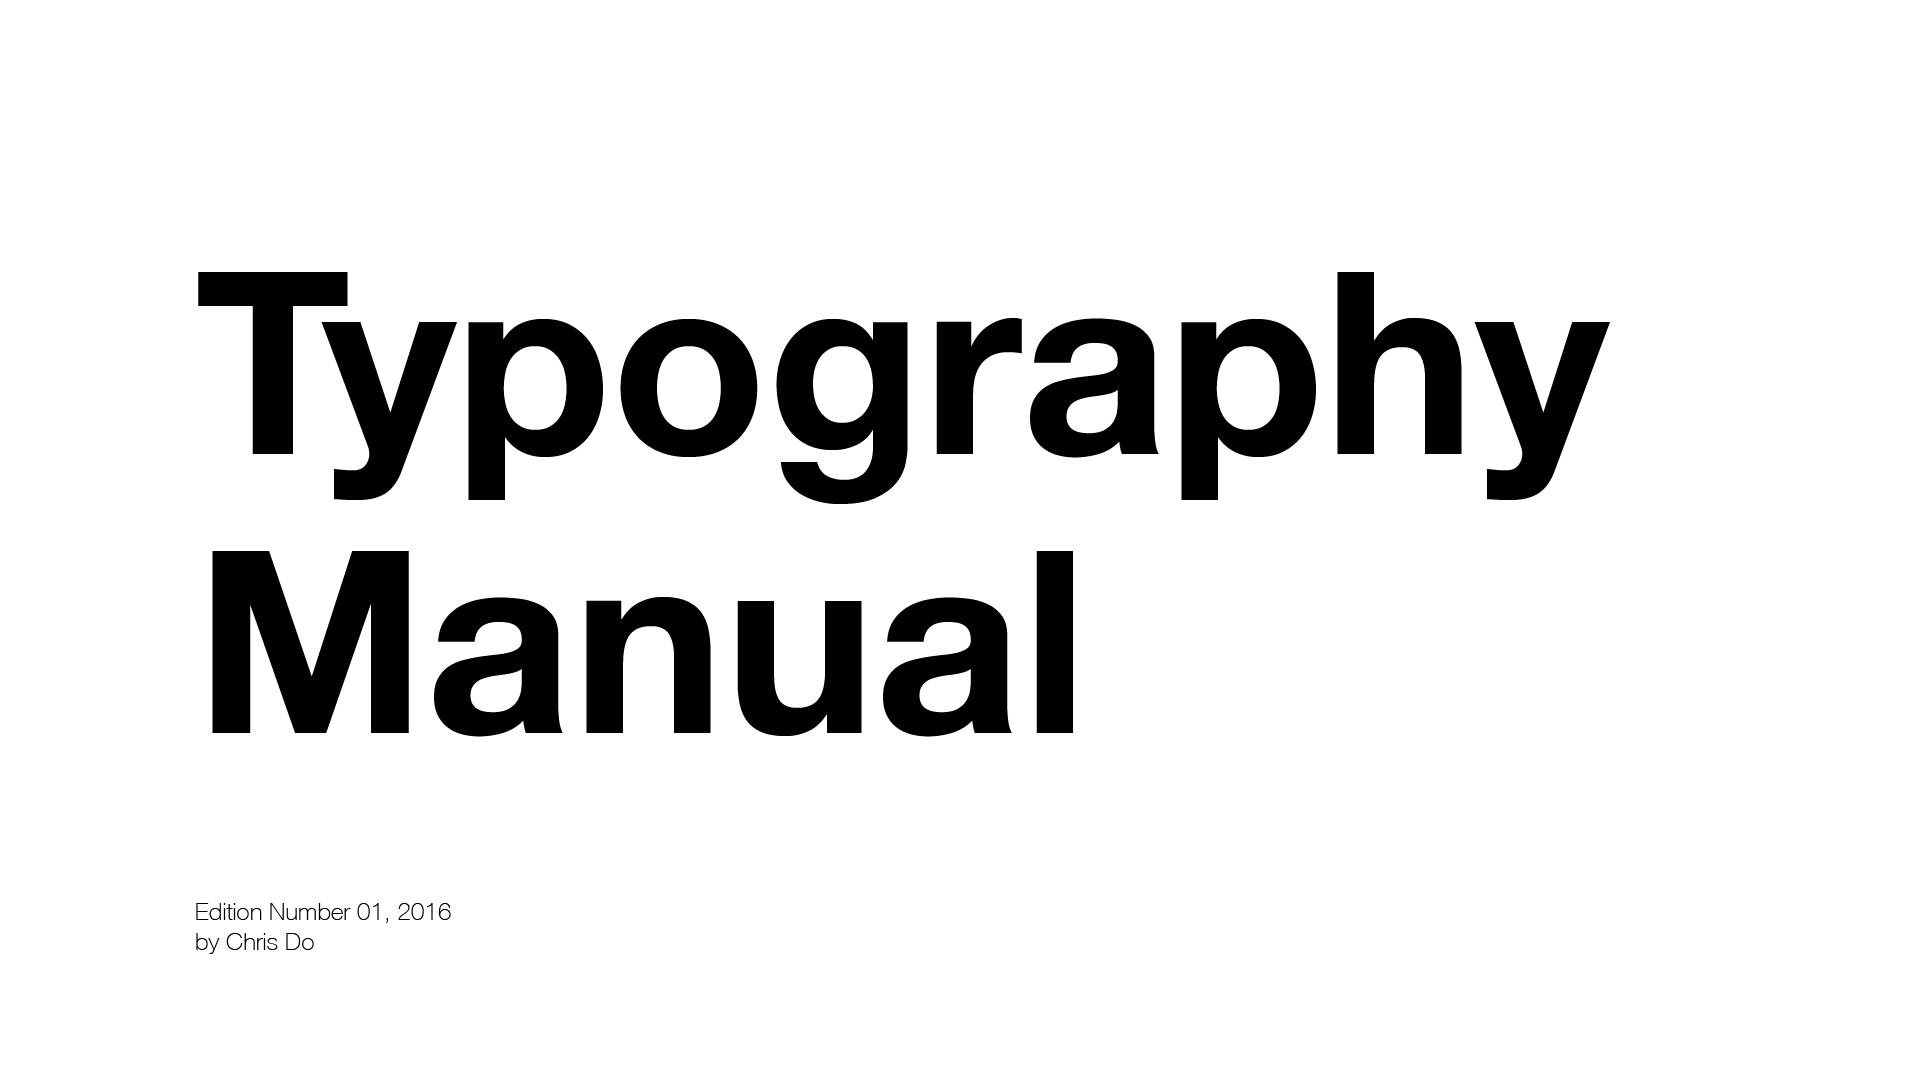 10 Typography Rules